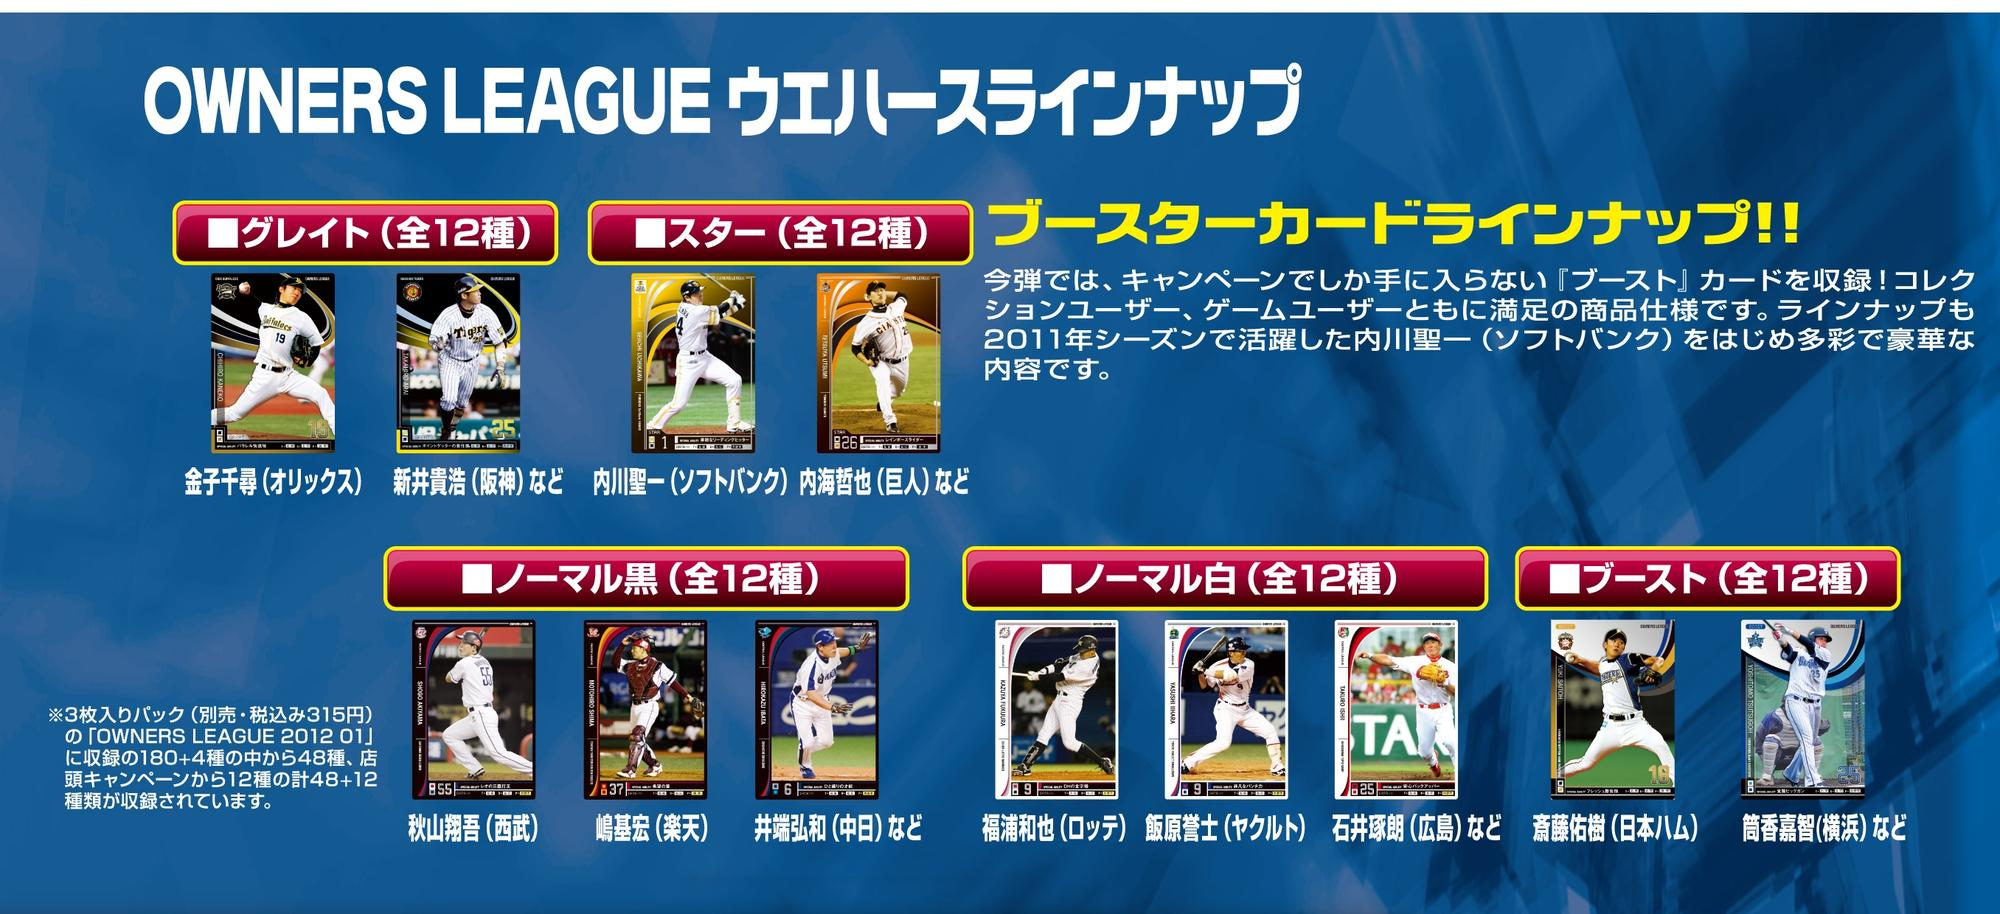 OWNERS LEAGUE 2012ウエハース 01_1